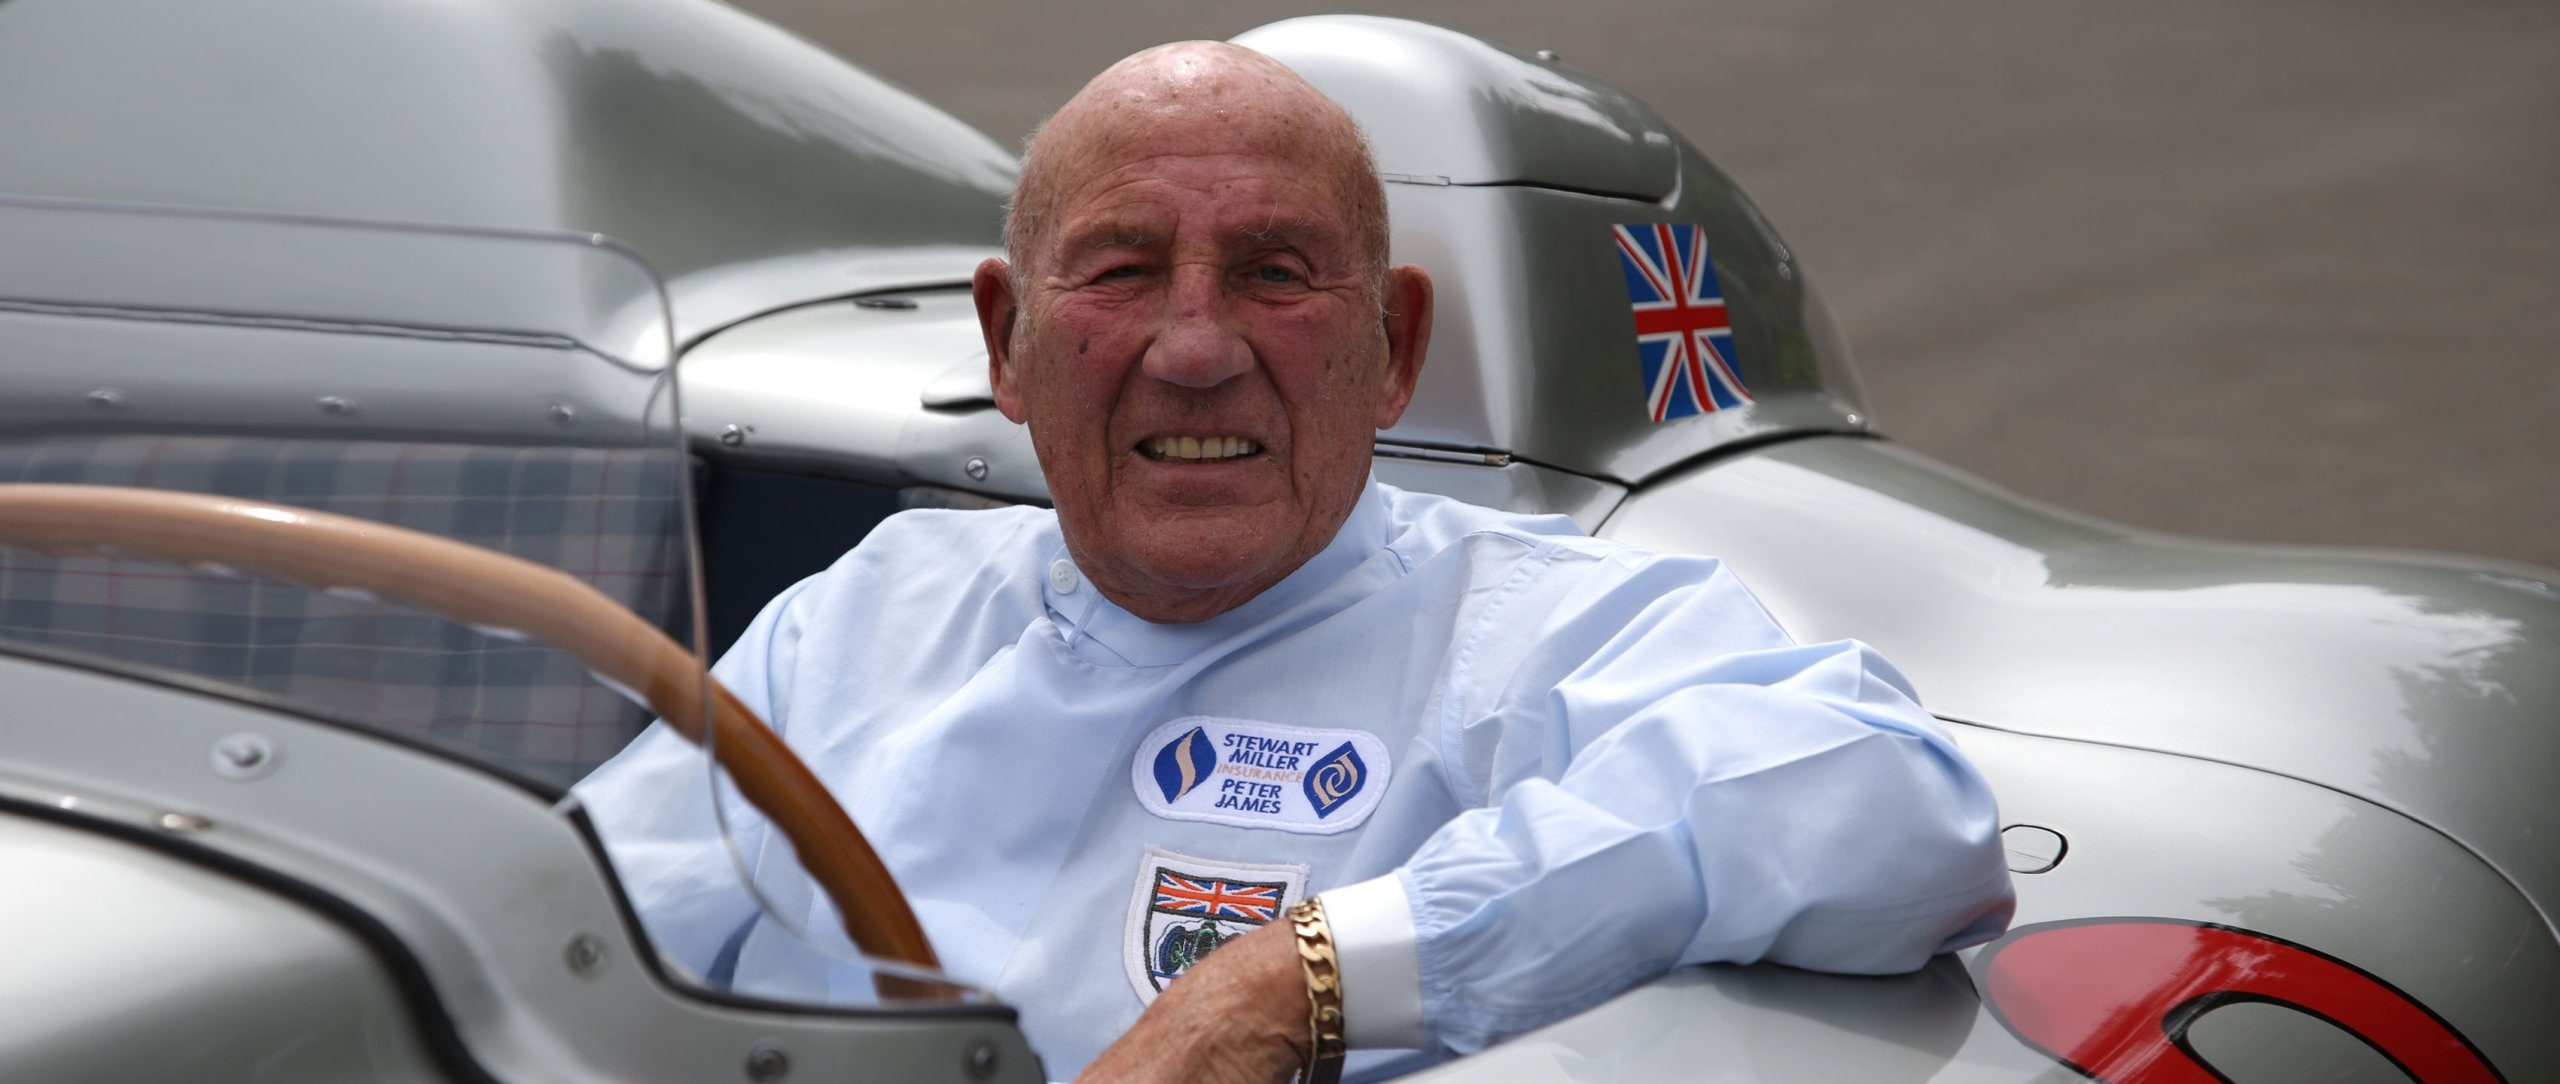 Sir Stirling Moss at the wheel of the Mercedes-Benz 300 SLR racing car (W 196 S) with start number 722. Photo from 2015.